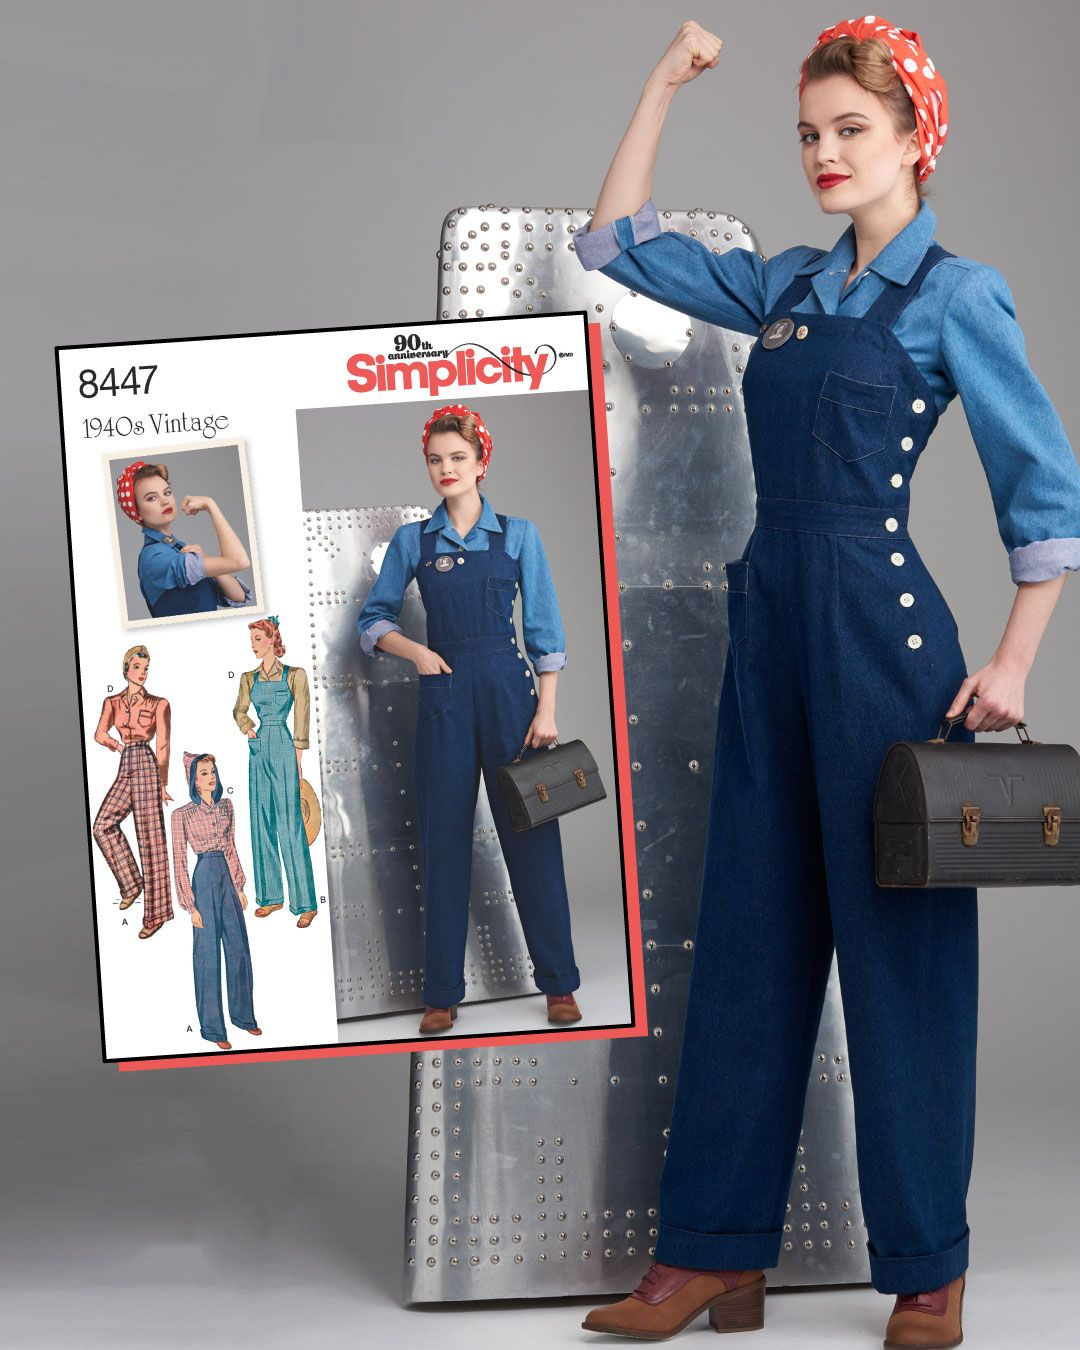 Simplicity Sewing Pattern S8447 Vintage 1940s Trousers, Dungarees & Blouses